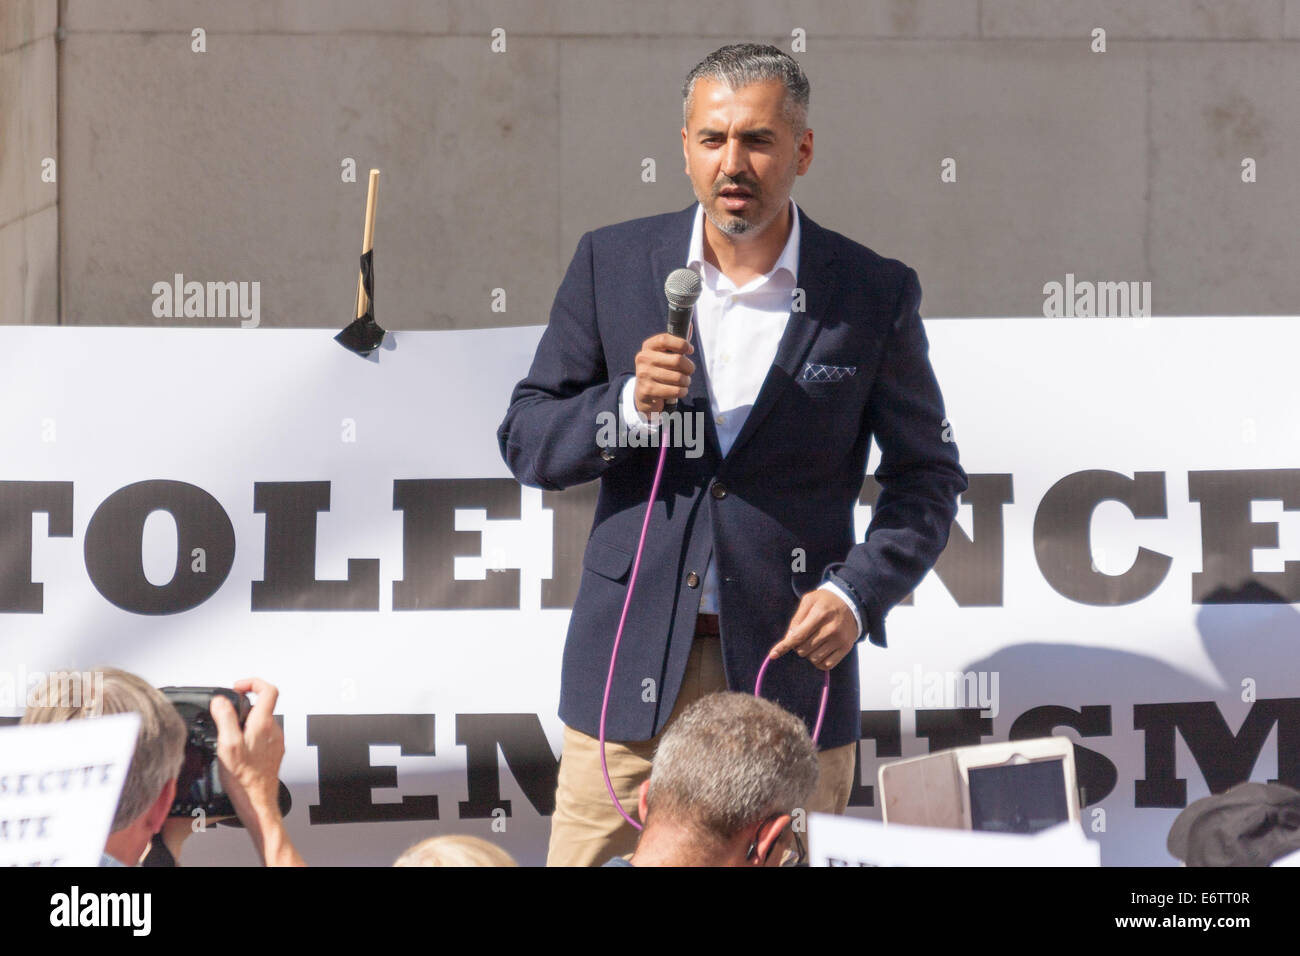 London, UK. 31st Aug, 2014. Quilliam Foundation leader Maajid Nawaz speaks out against religious intolerance as - Stock Image